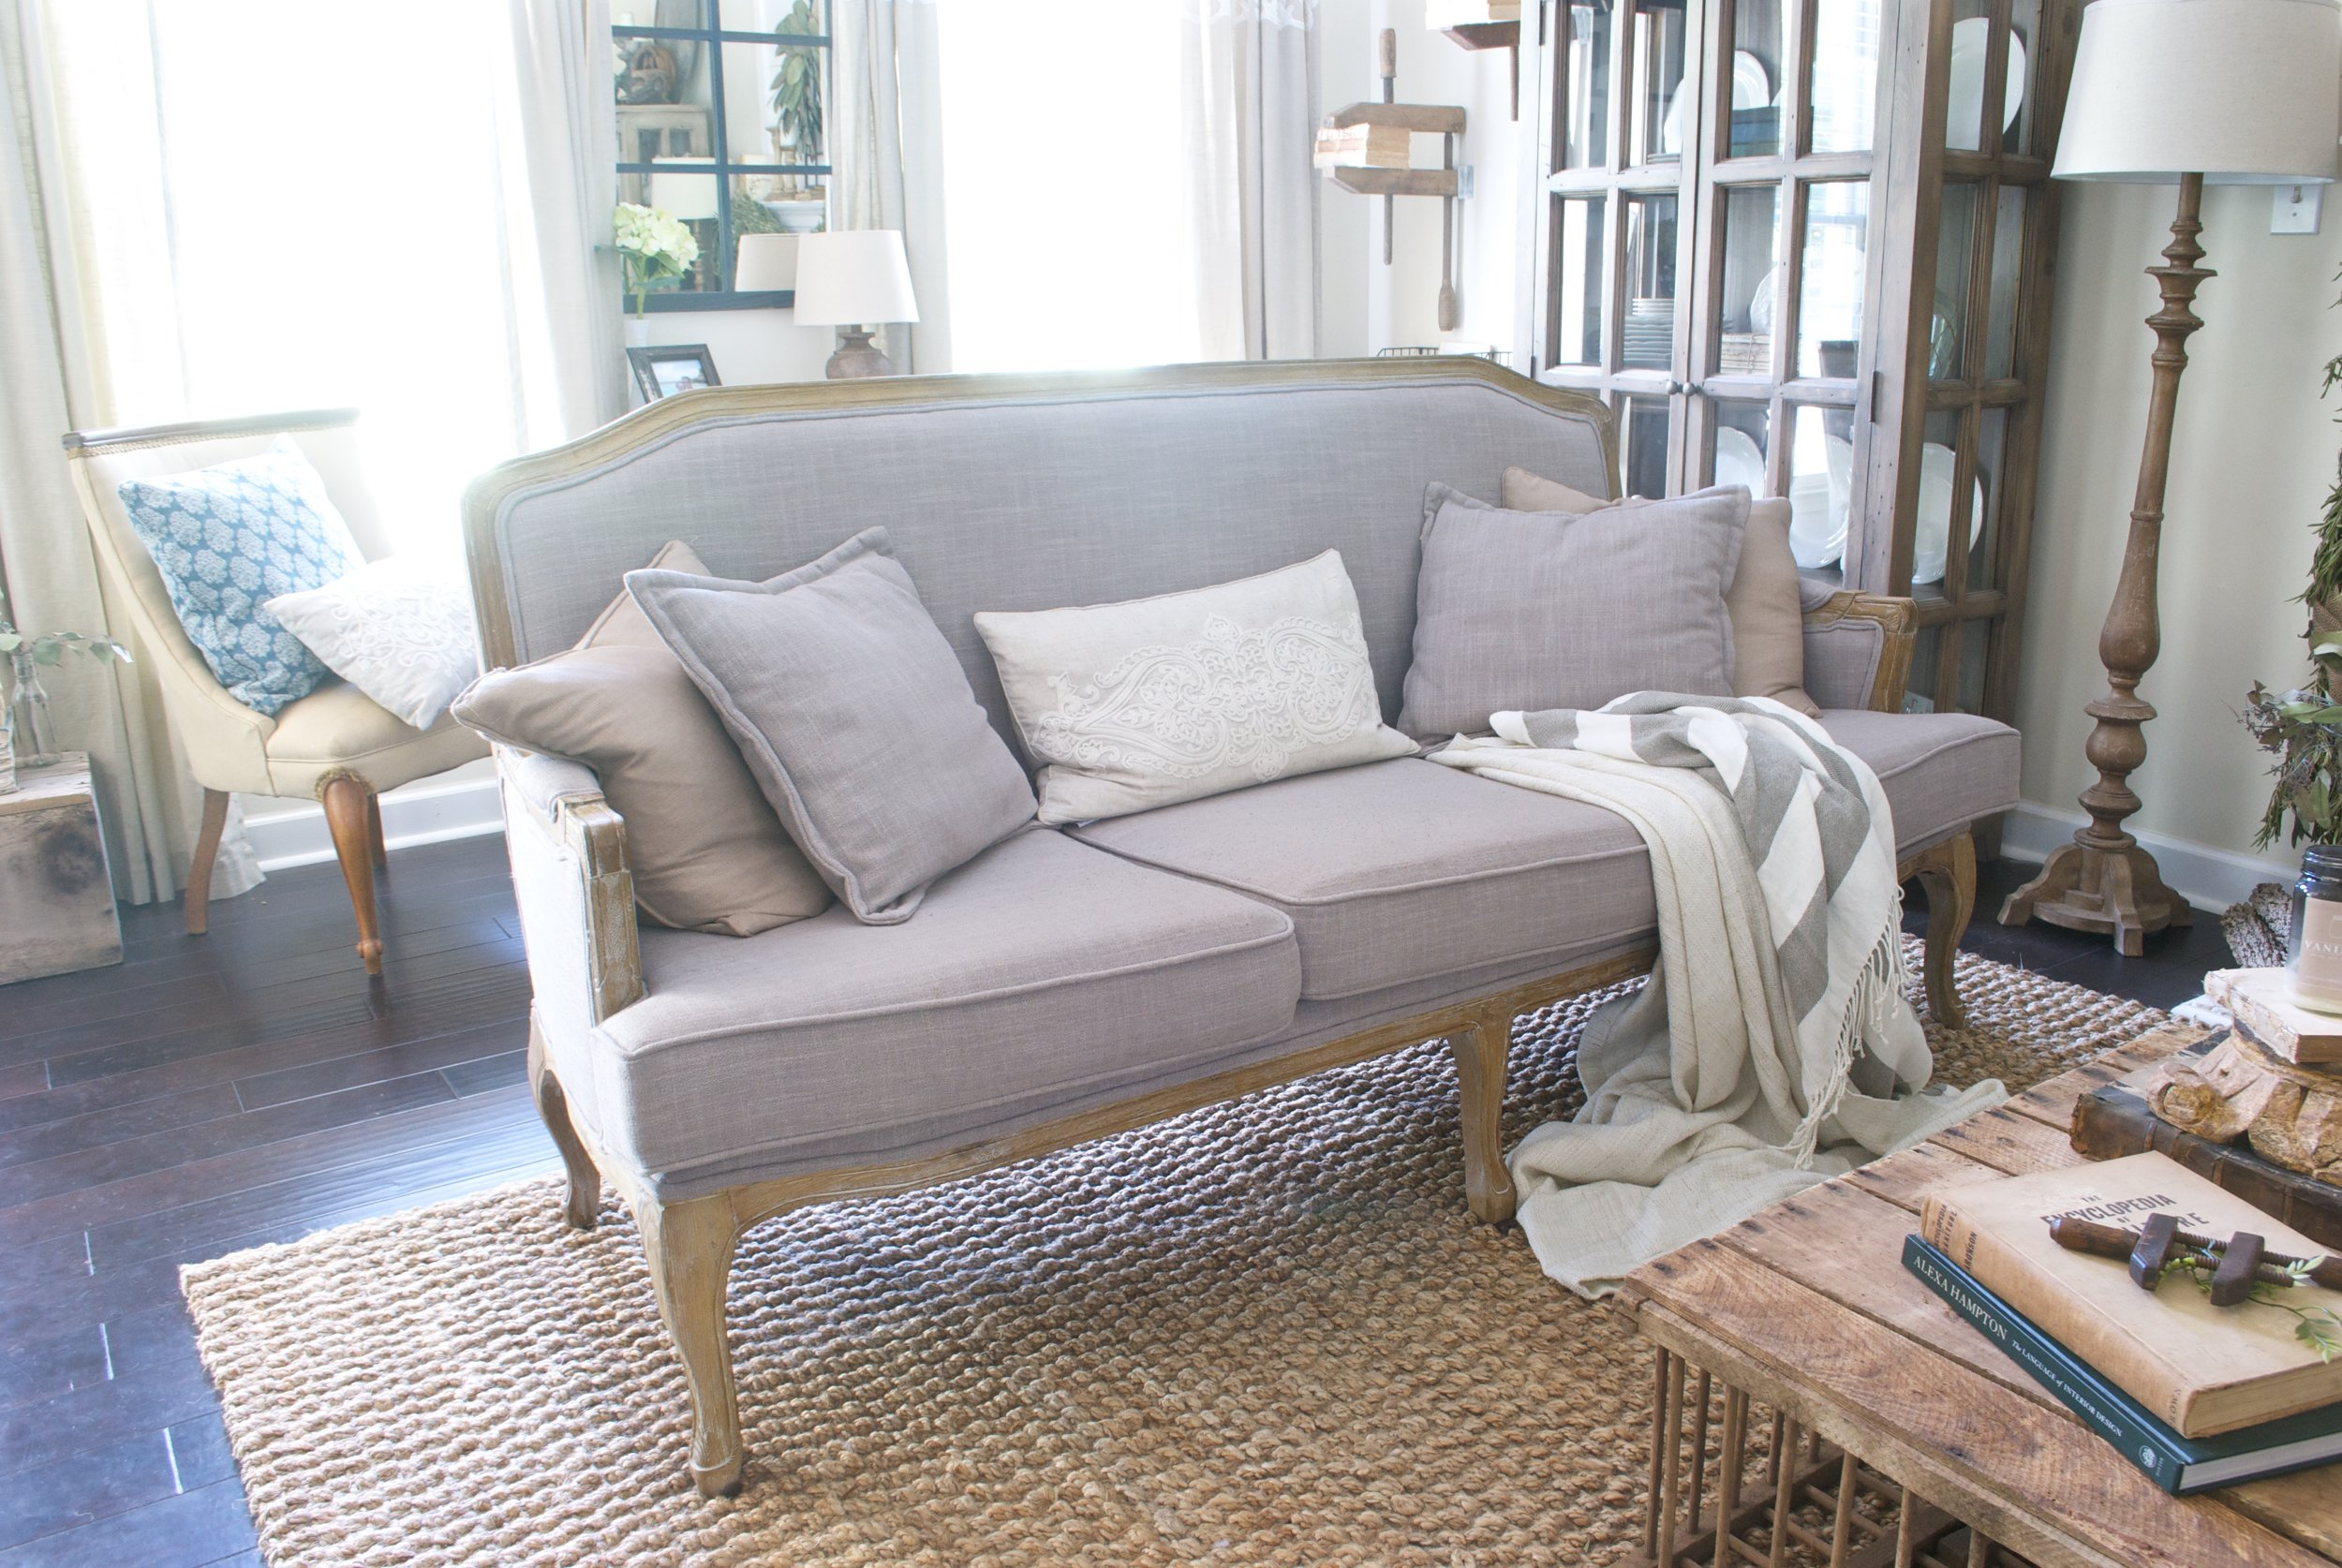 French Farmhouse Style Sofa- Plum Pretty Decor and Design